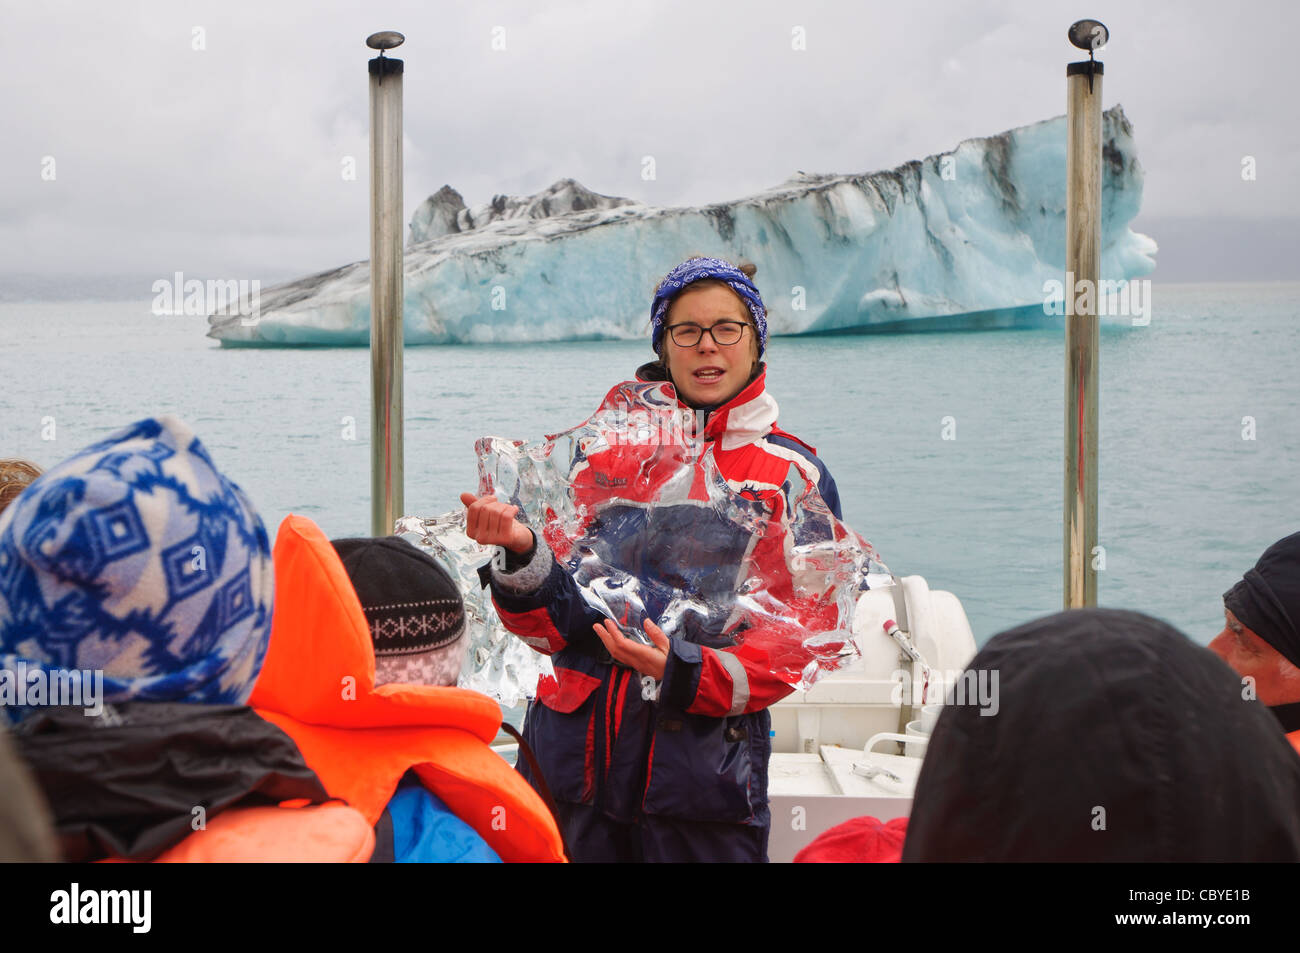 A guide explains glacial ice onboard a tour of Glacier Lagoon, Iceland. - Stock Image